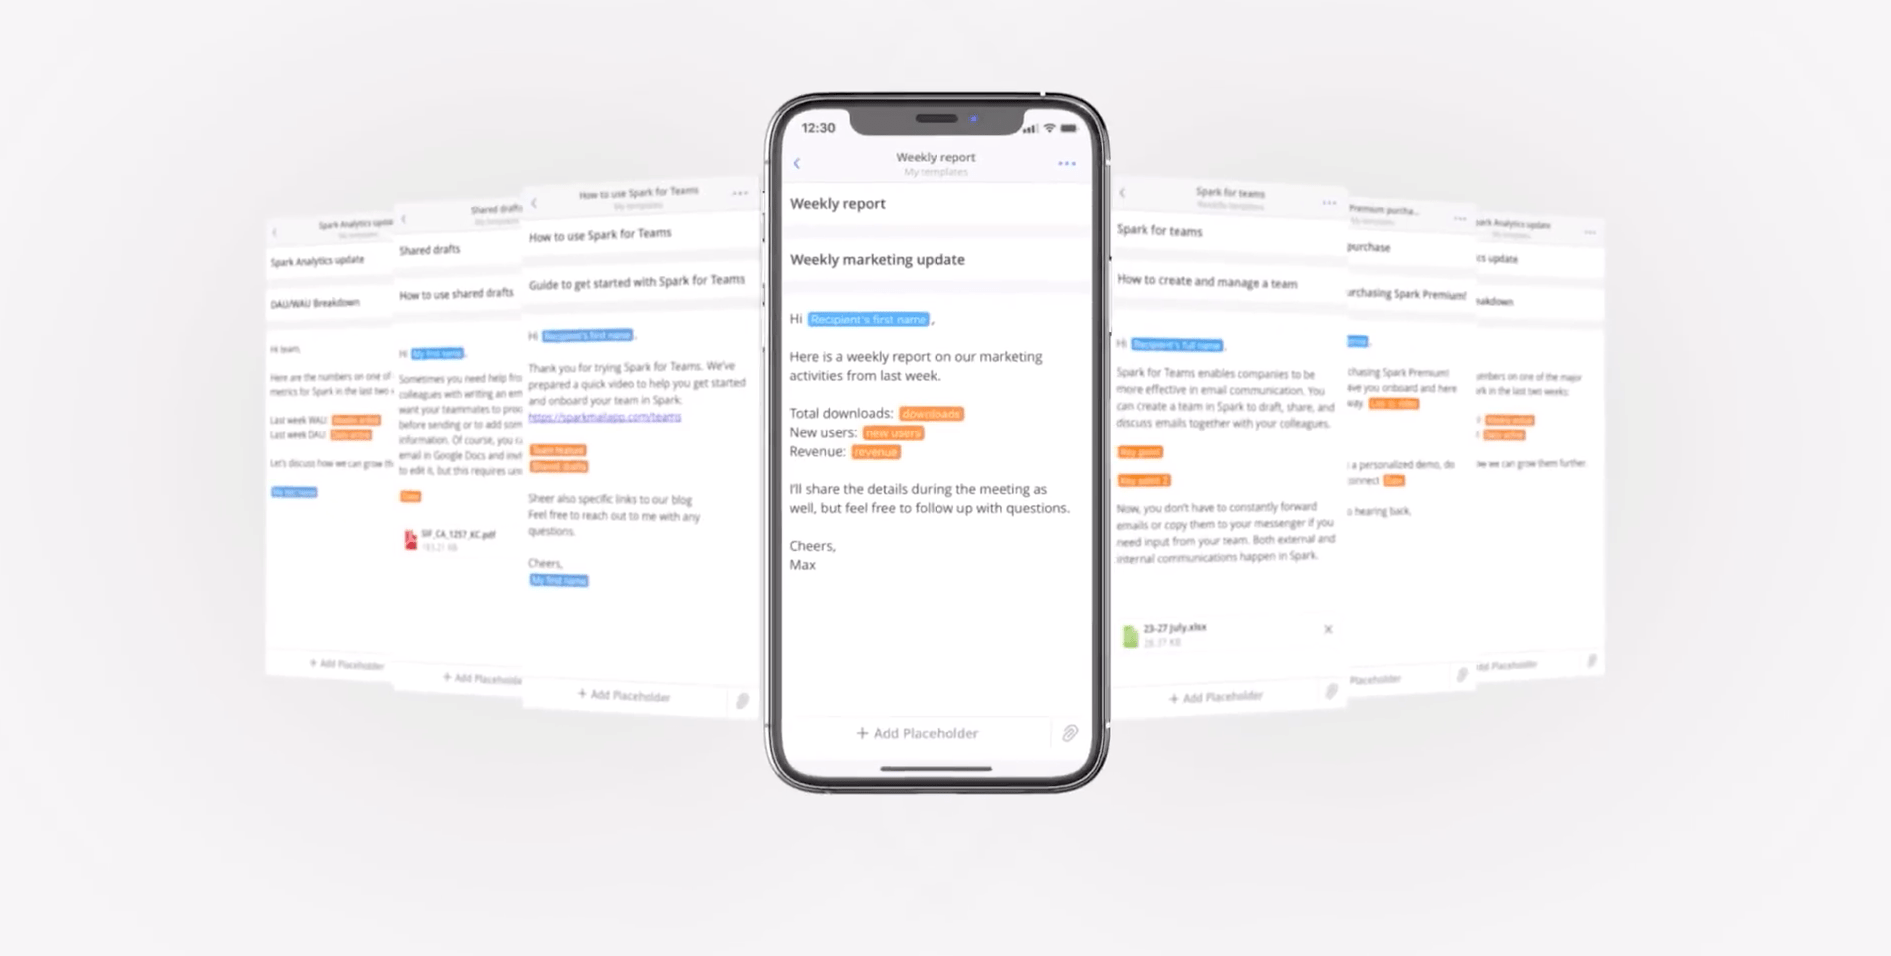 Spark Update Brings New Template Feature to Easily Write